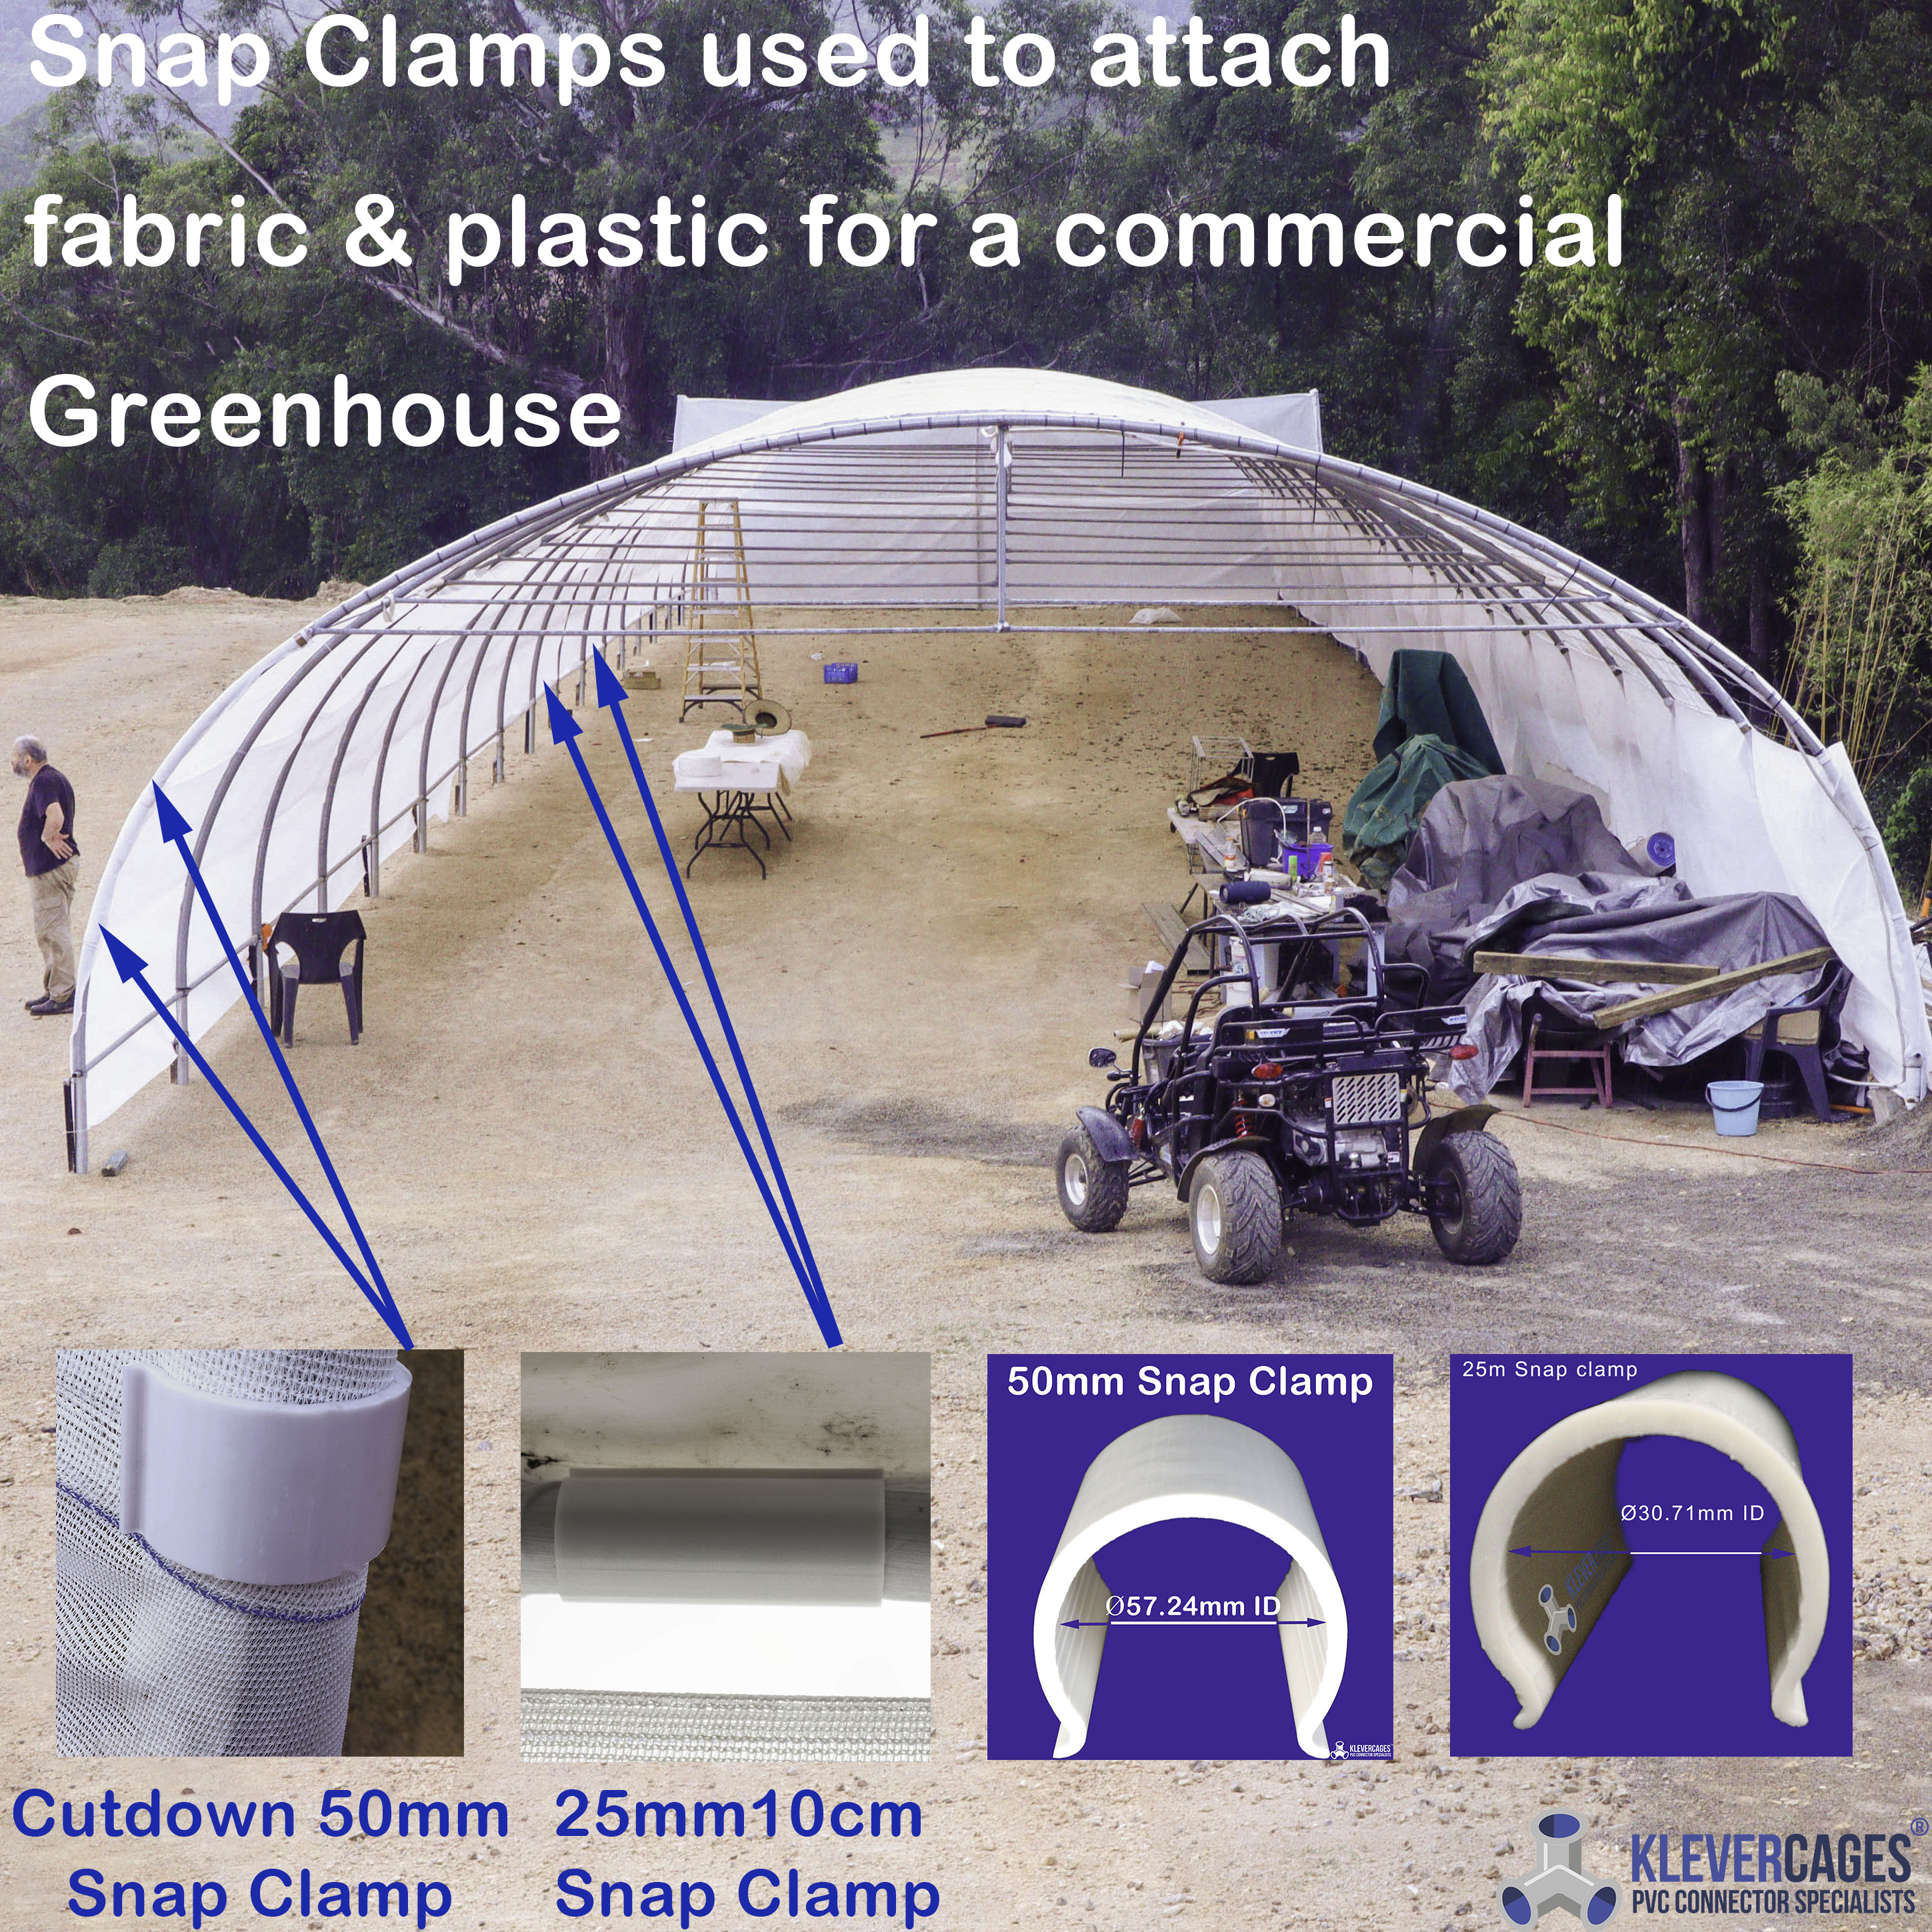 Commercial greenhouse for growing mushrooms with plastic sheeting attached with 25mm and 50mm snap clamps from Klever Cages